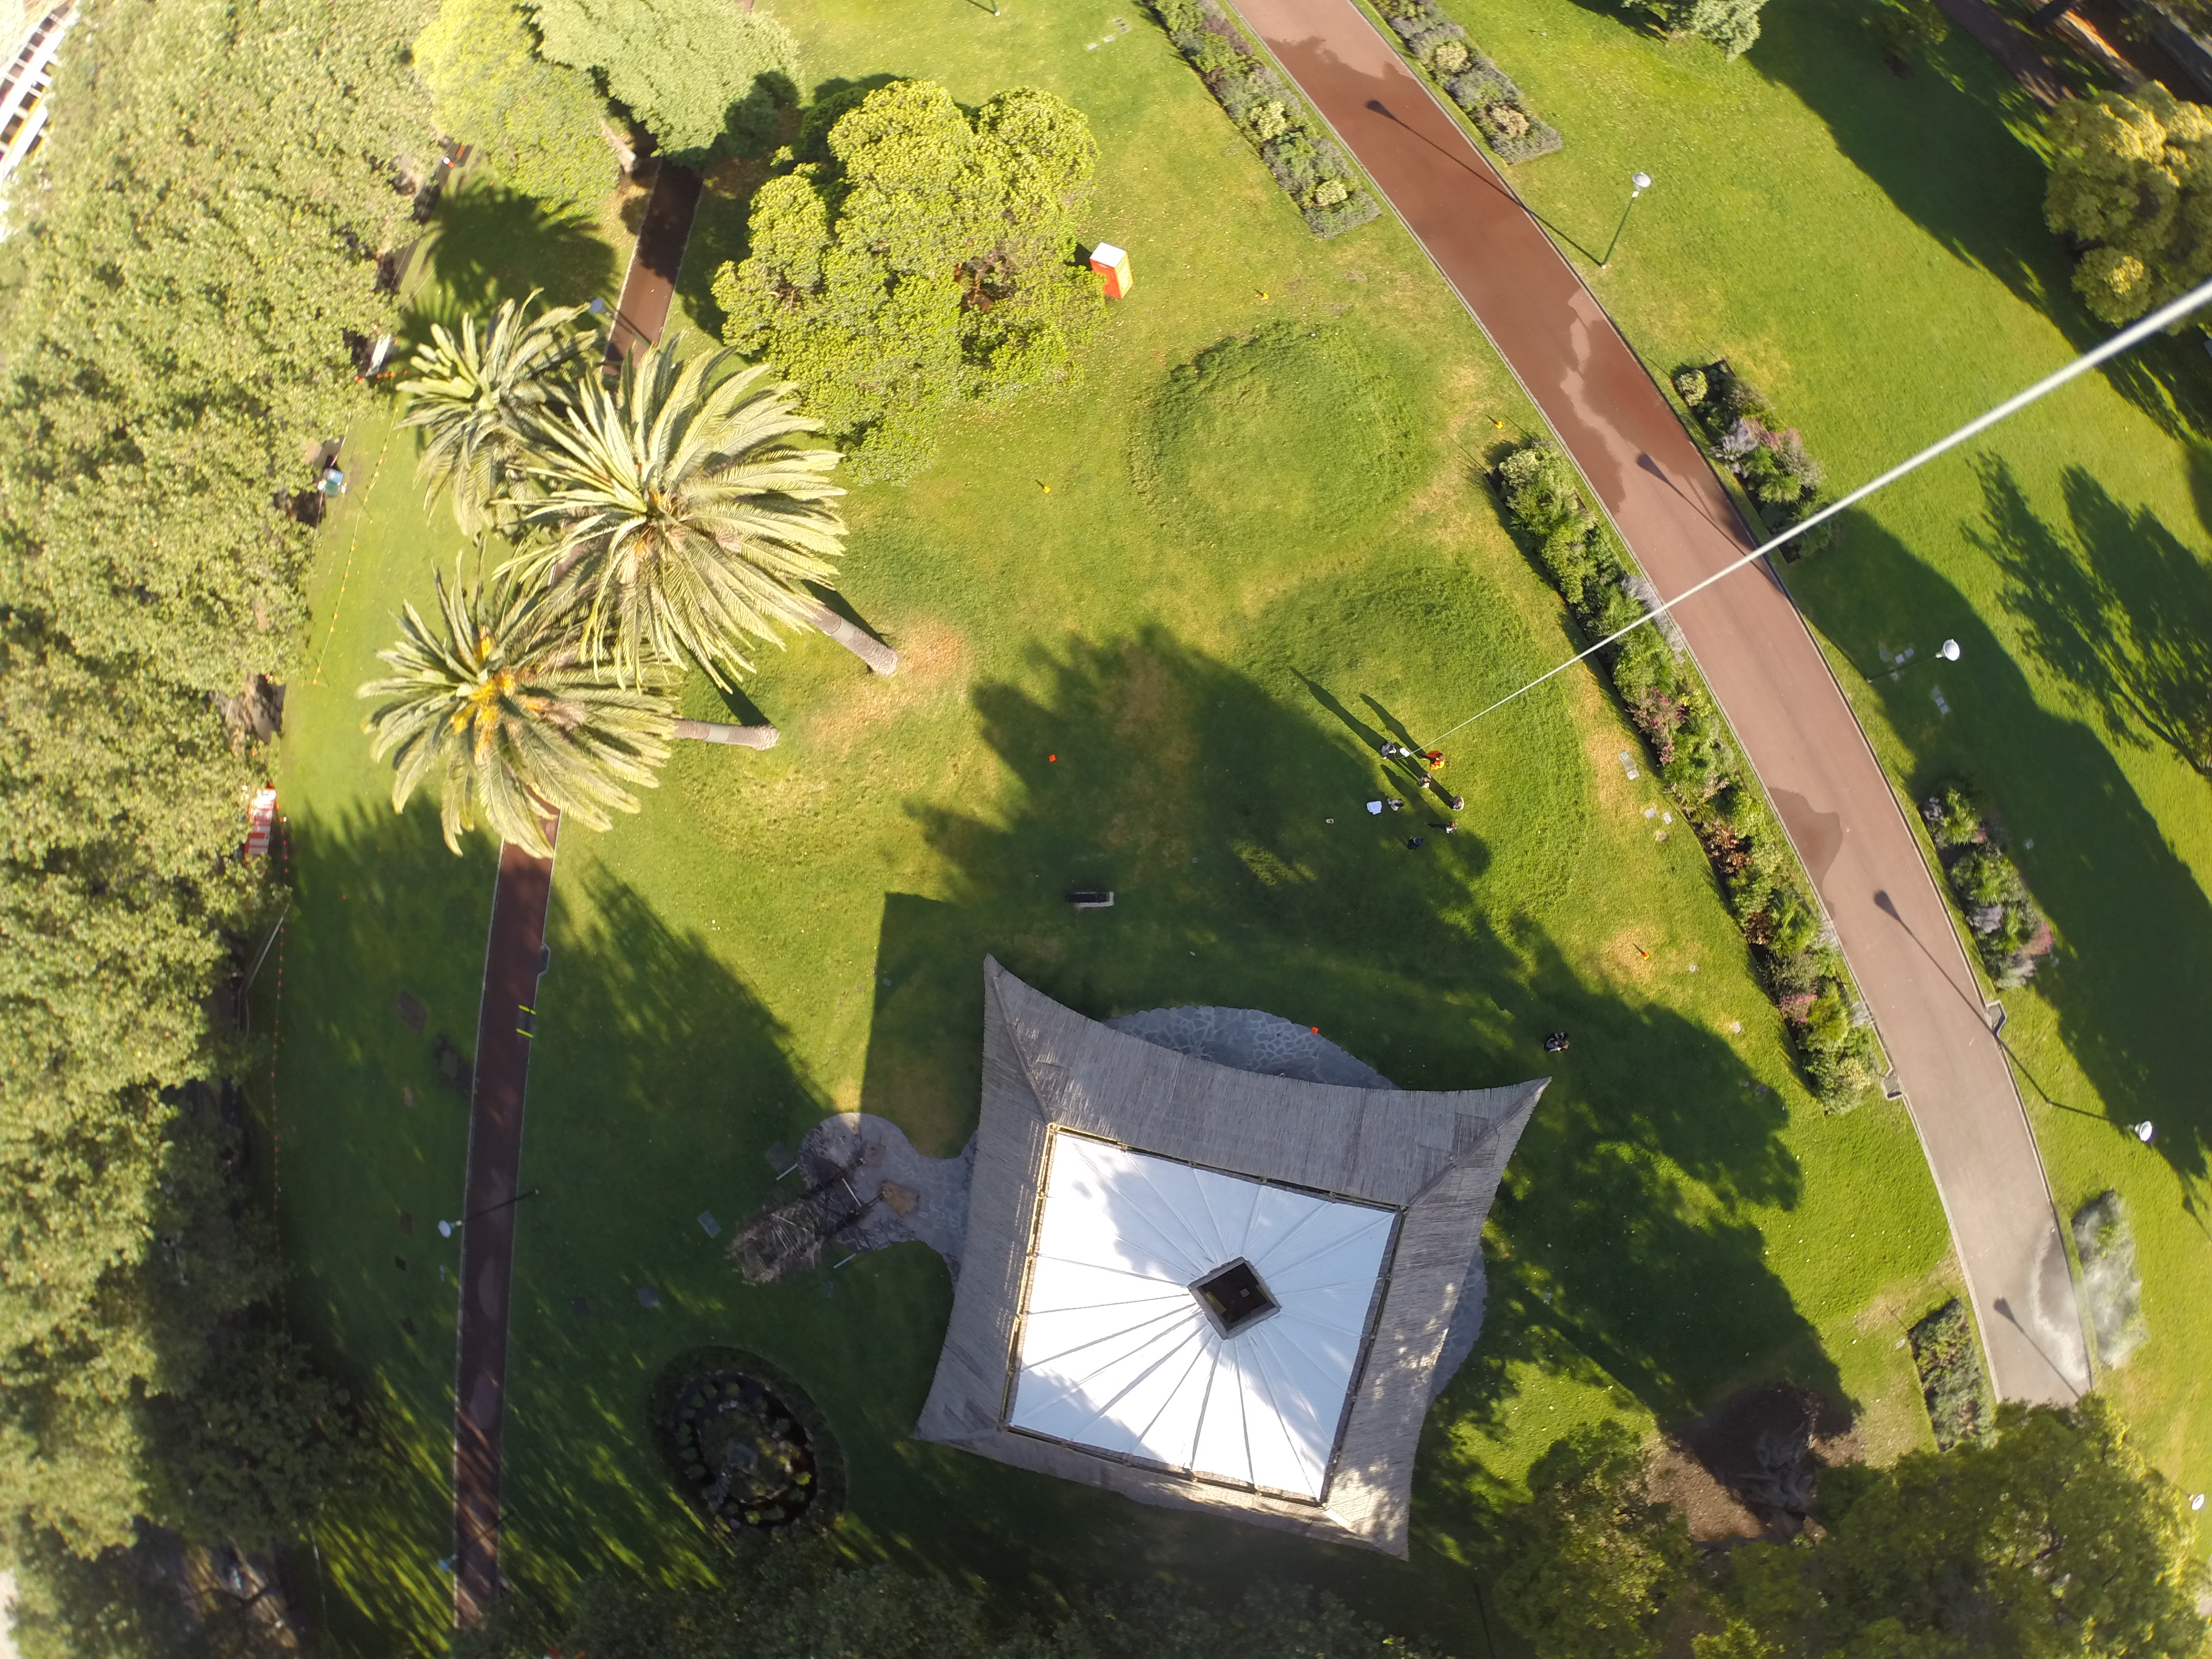 A balloon mapping event at MPavilion (Melbourne, Australia)